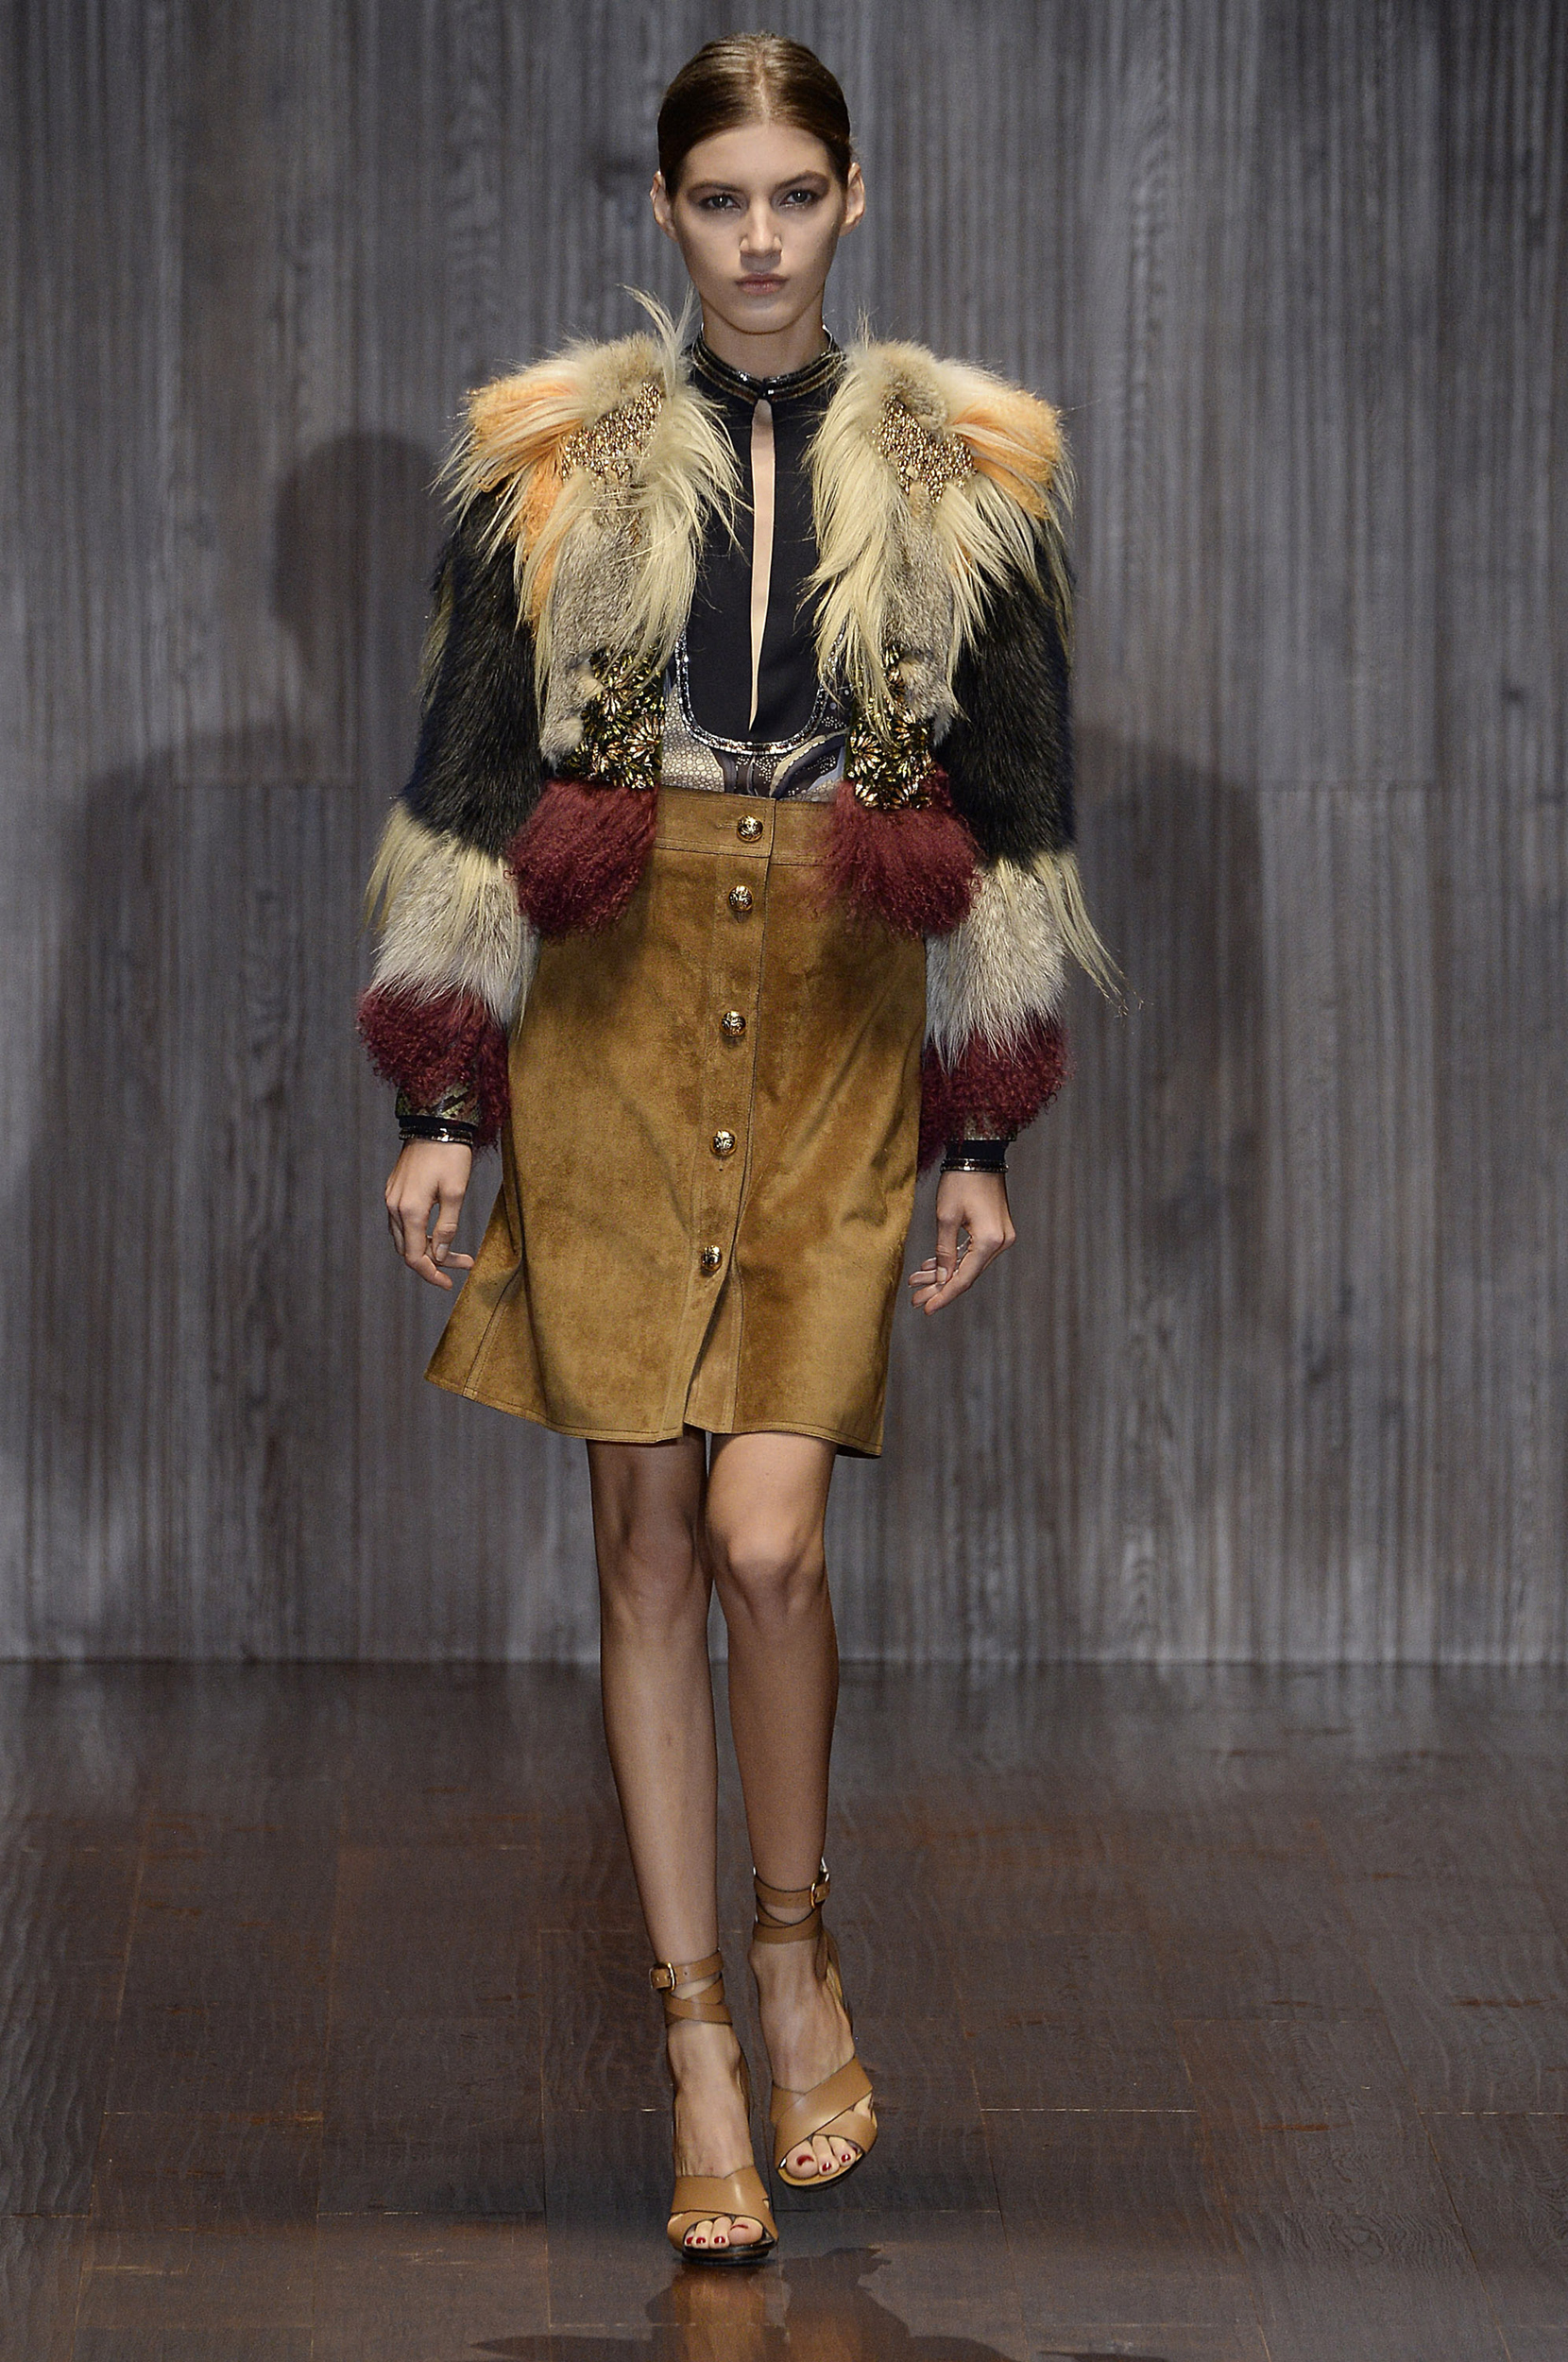 gucci-runway-rtw-spring-2015-milan-fashion-week-1